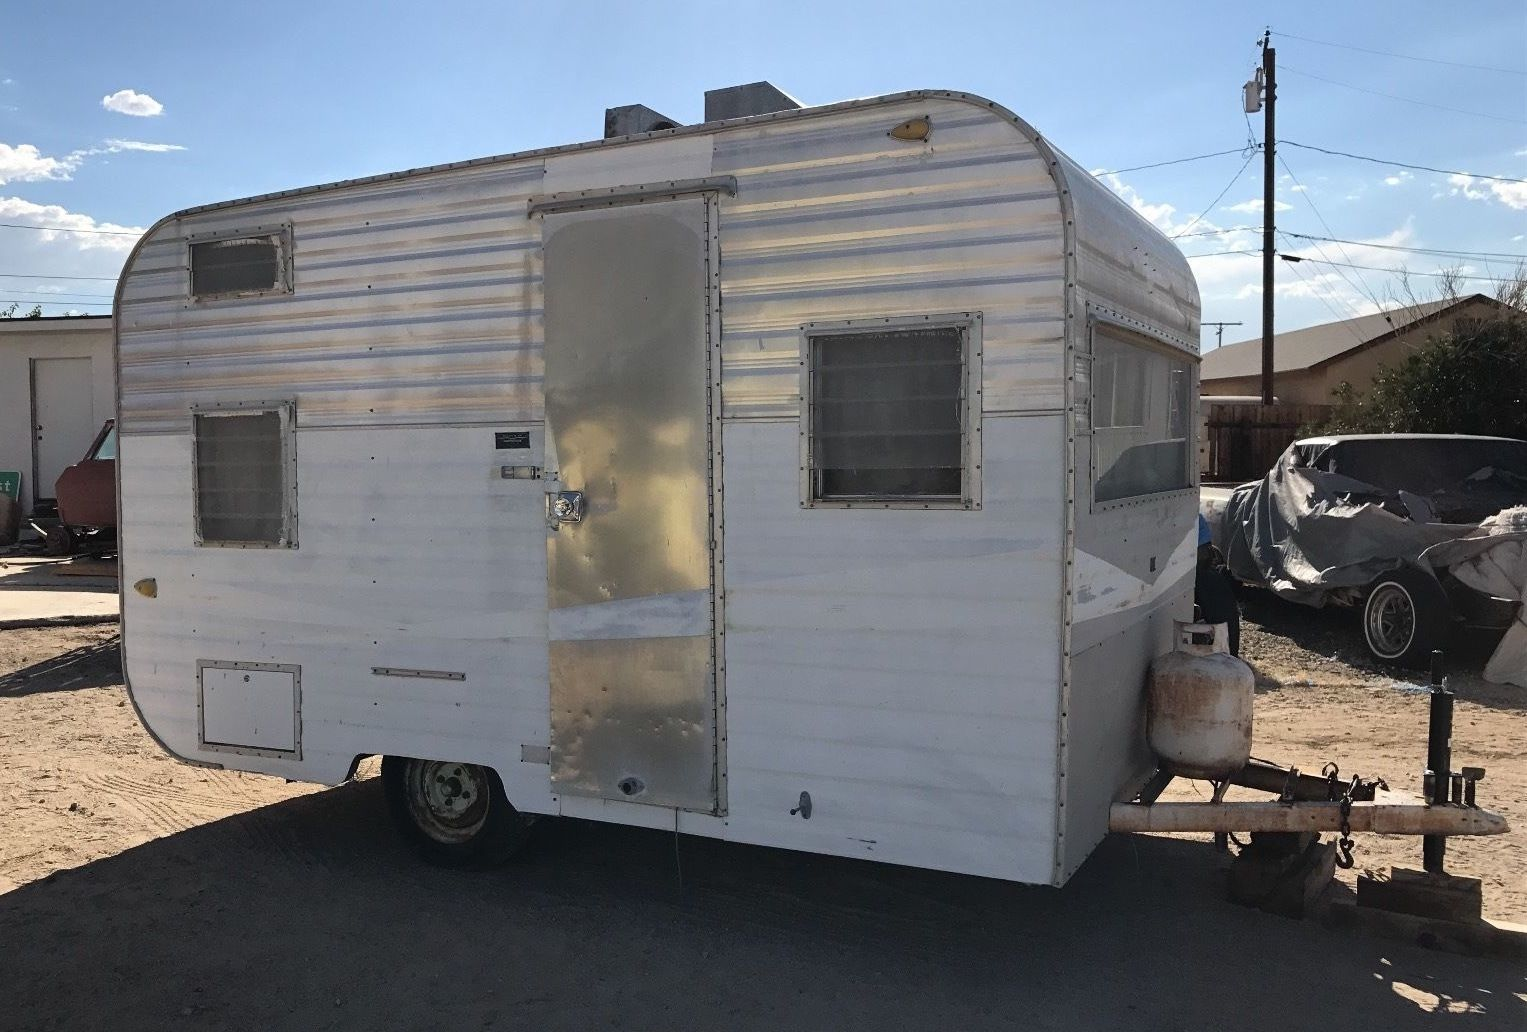 All Original 1964 Santa Fe Camper Trailer For Sale